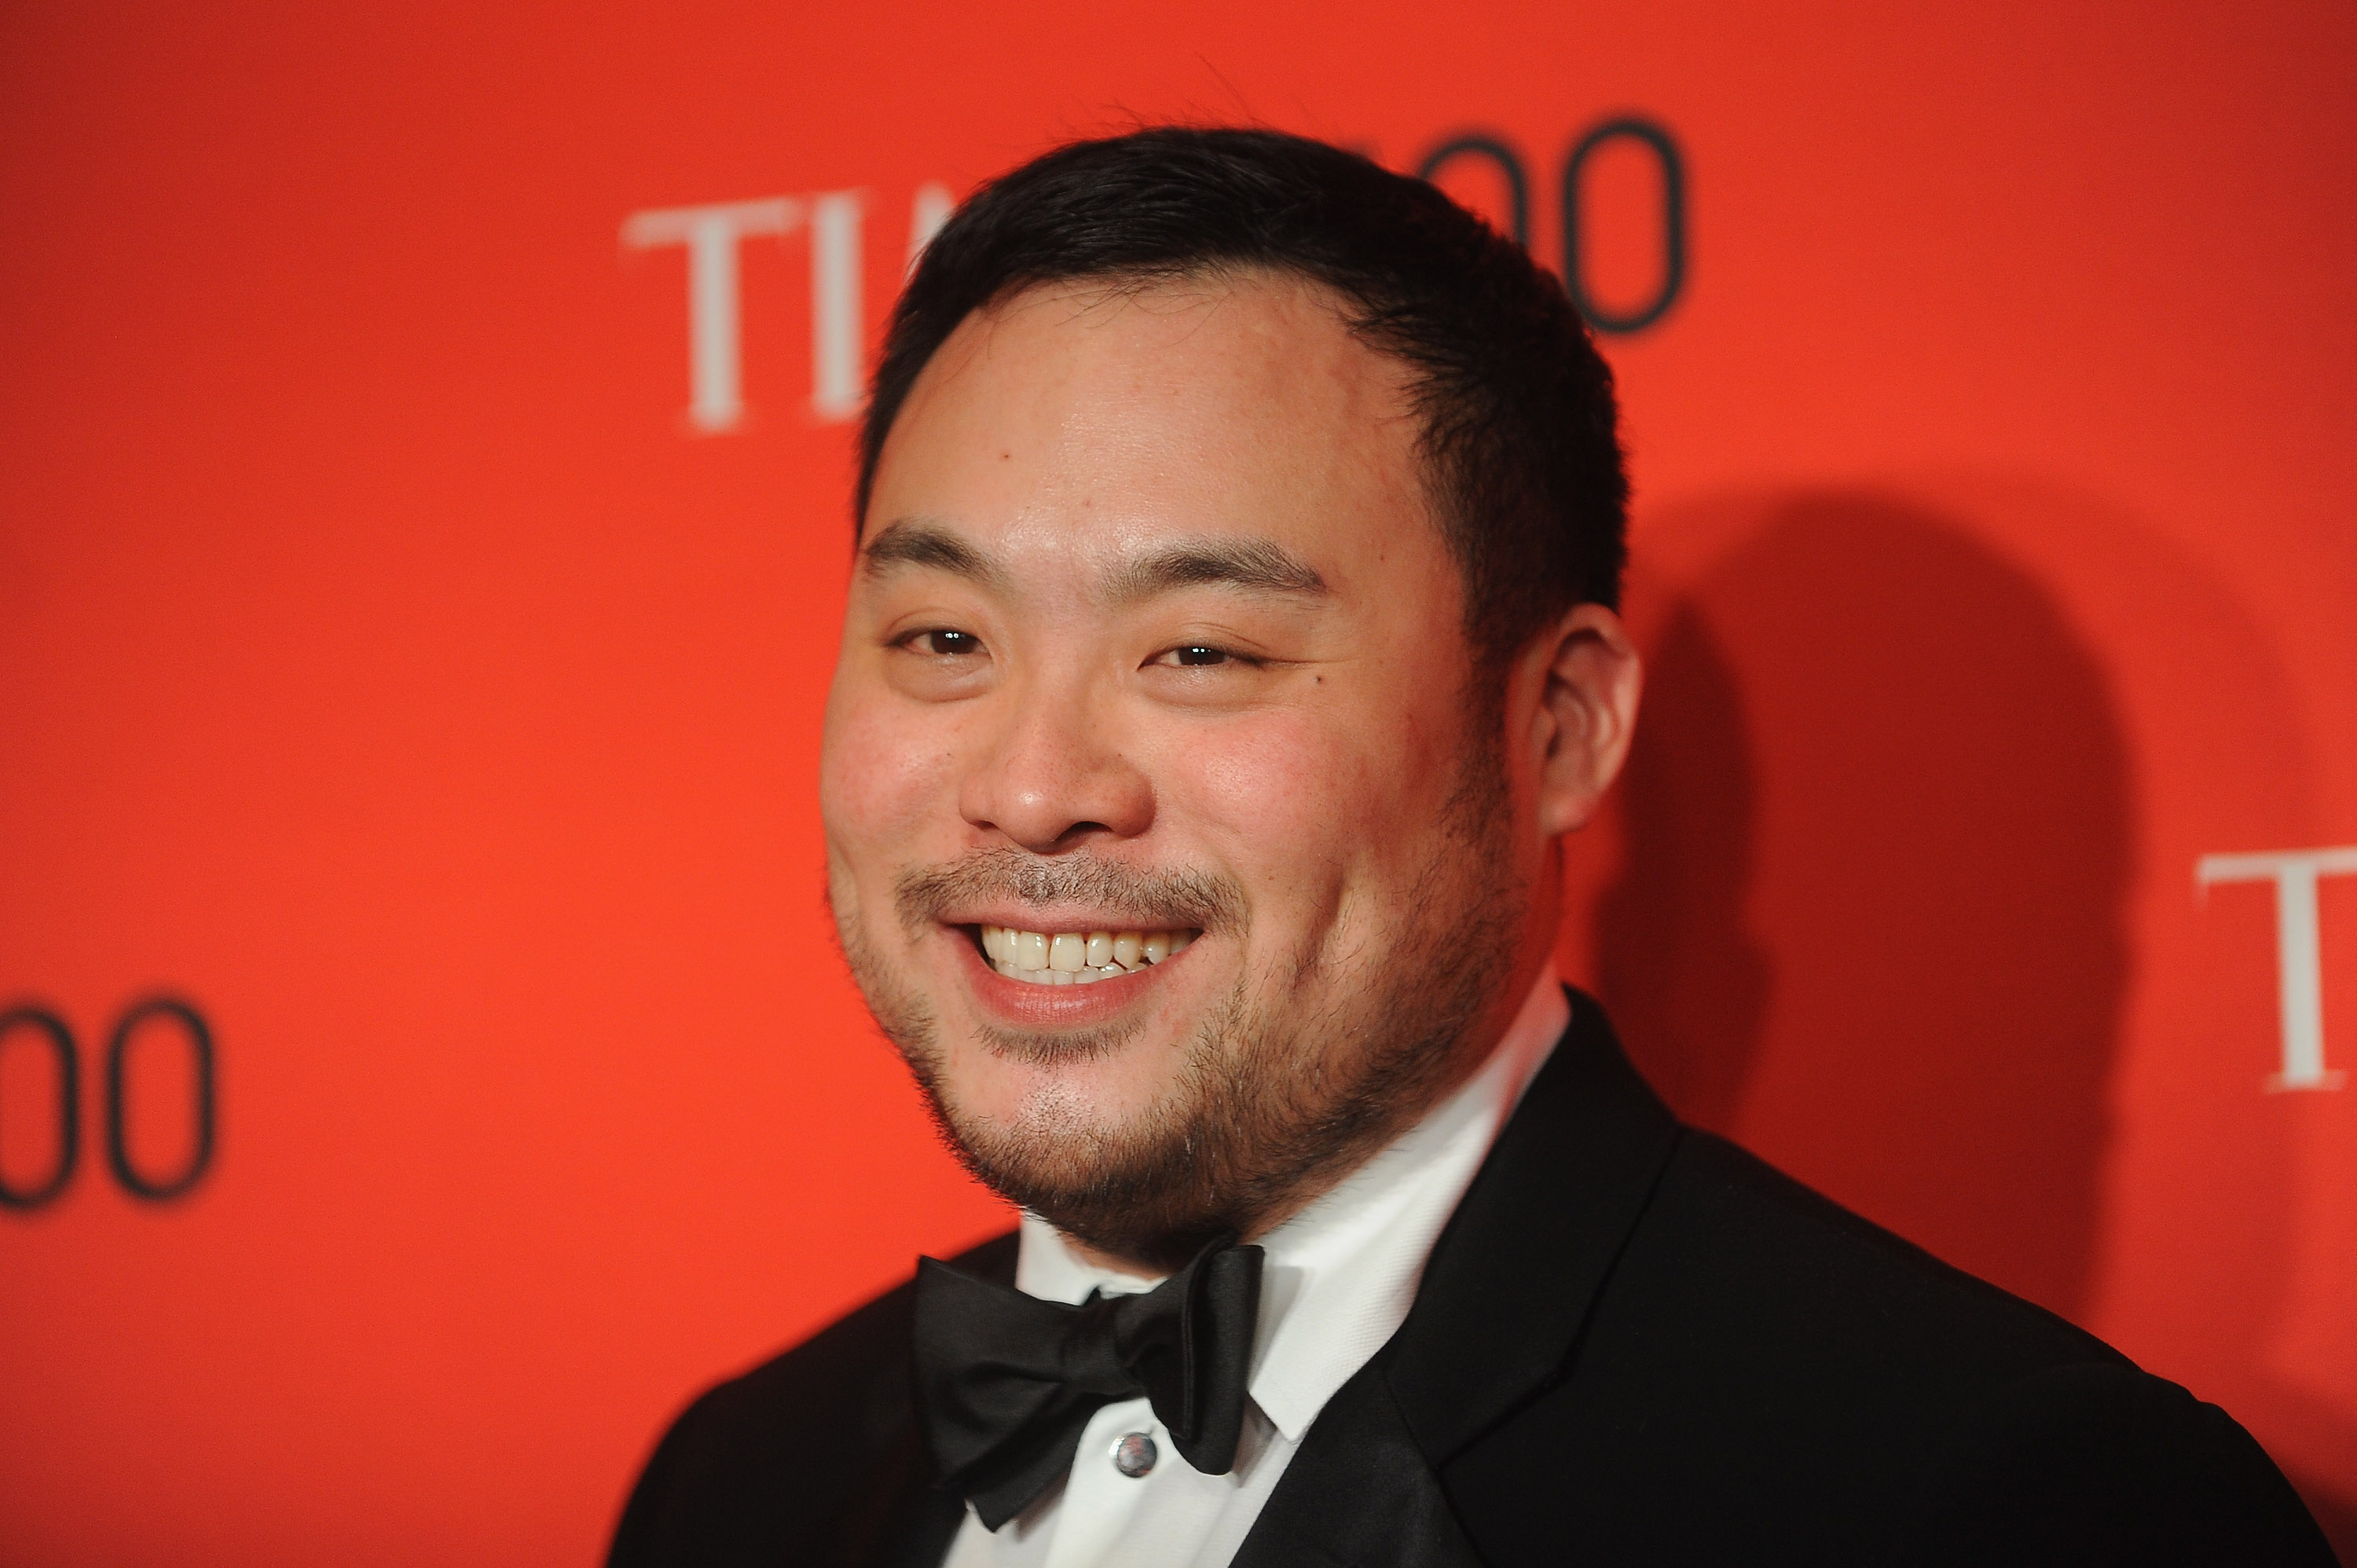 David Chang at the TIME 100 Gala celebrating TIME'S 100 Most Influential People In The World in New York City on April 24, 2012.